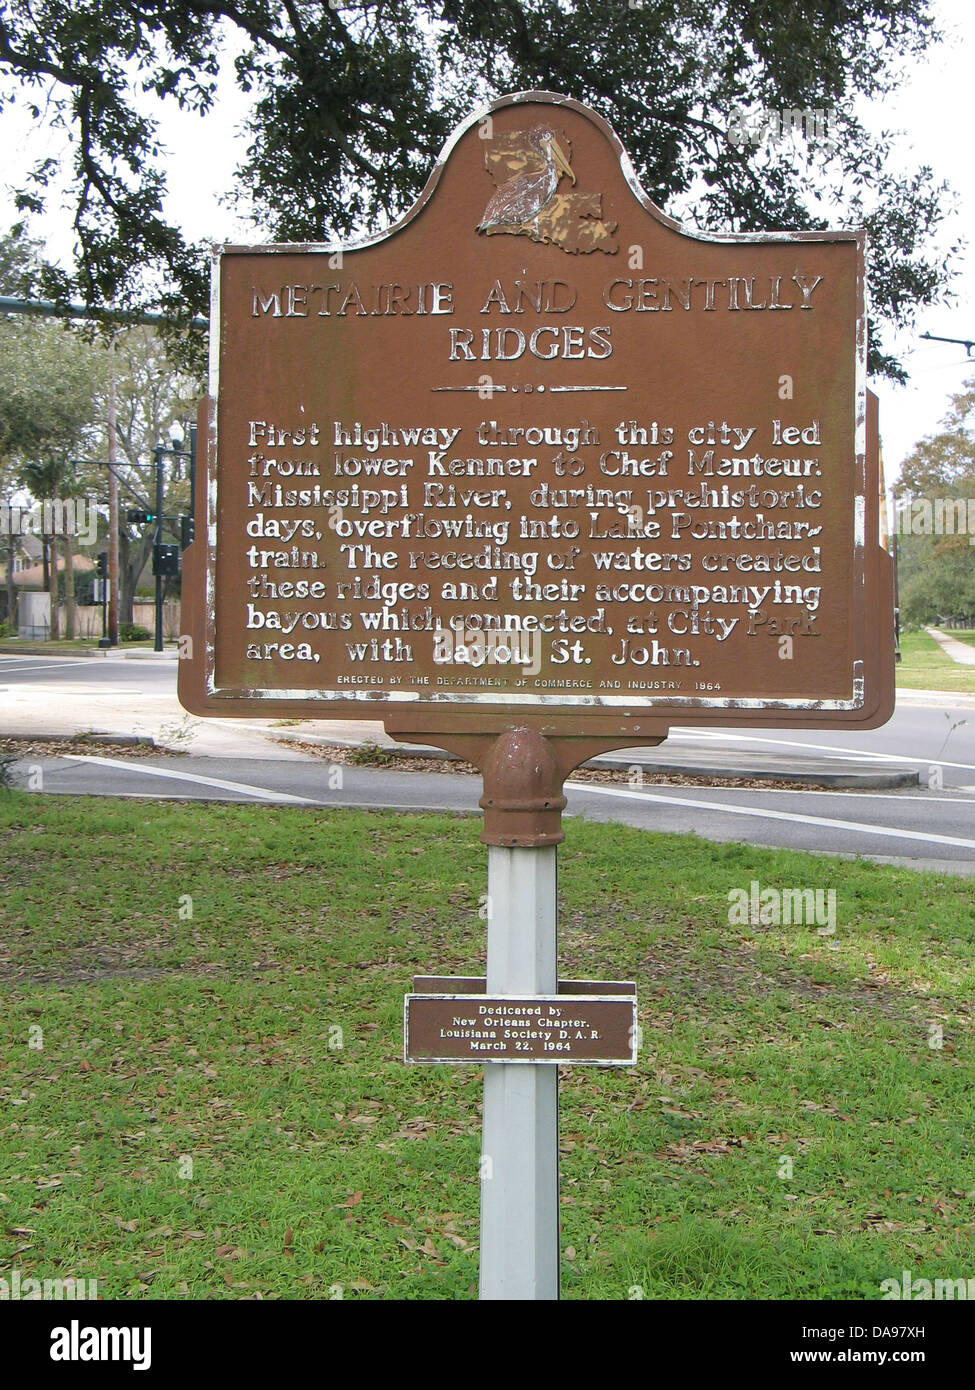 METAIRIE AND GENTILLY RIDGES First highway through this city led from lower Kenner to Chef Menteur, Mississippi - Stock Image